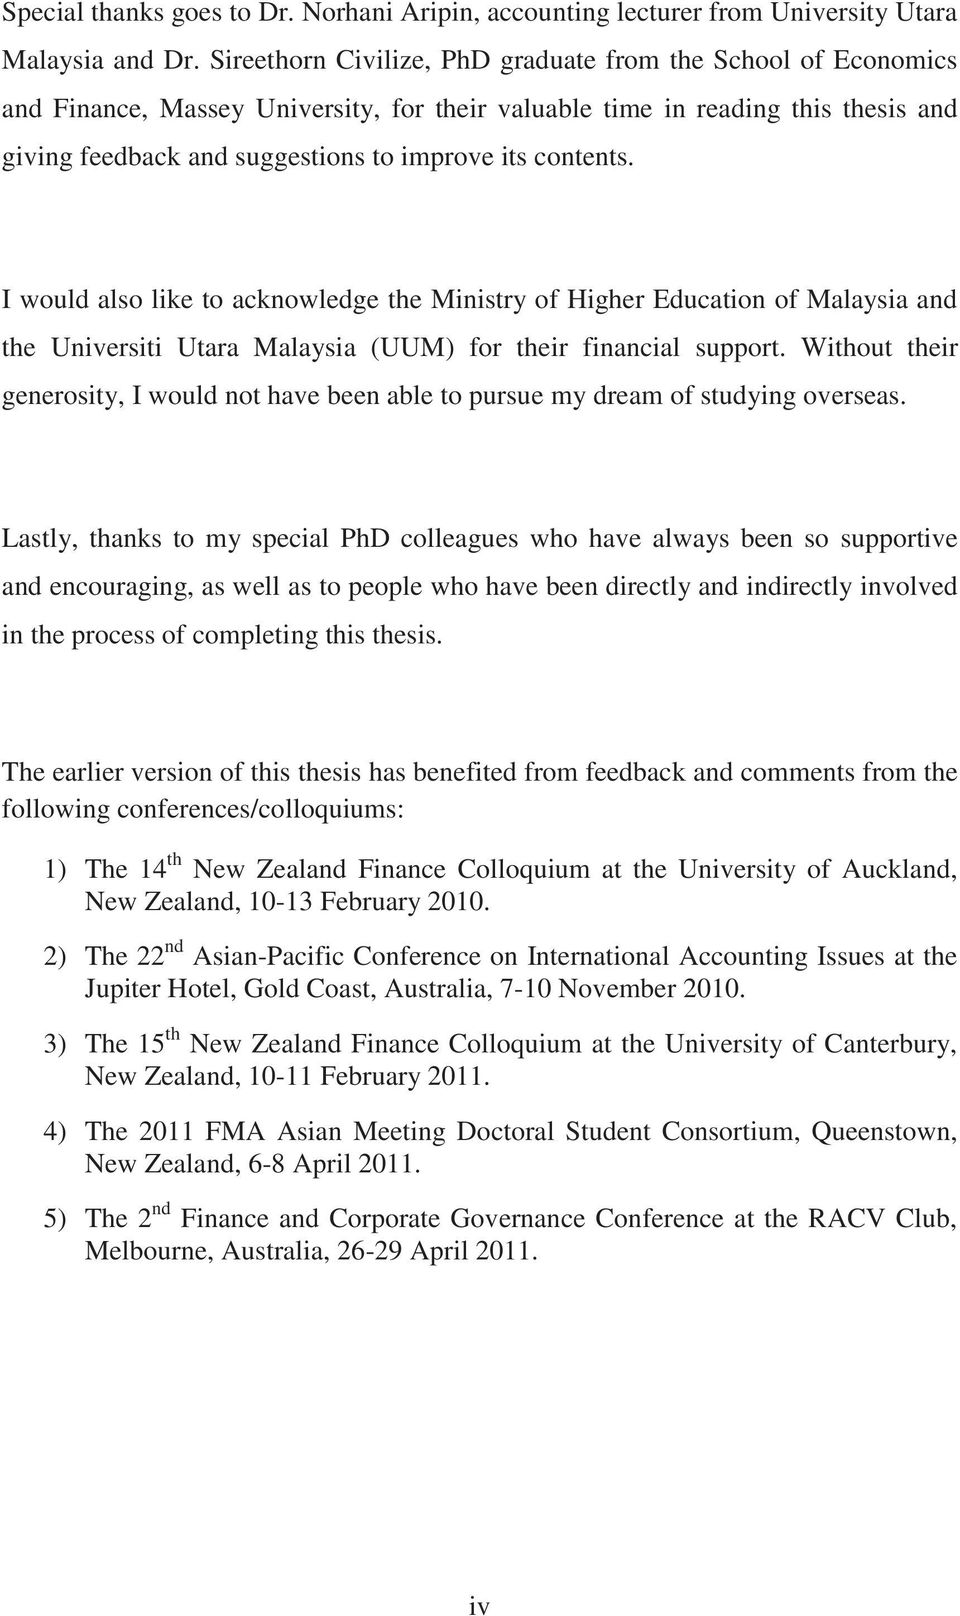 contents. I would also like to acknowledge the Ministry of Higher Education of Malaysia and the Universiti Utara Malaysia (UUM) for their financial support.